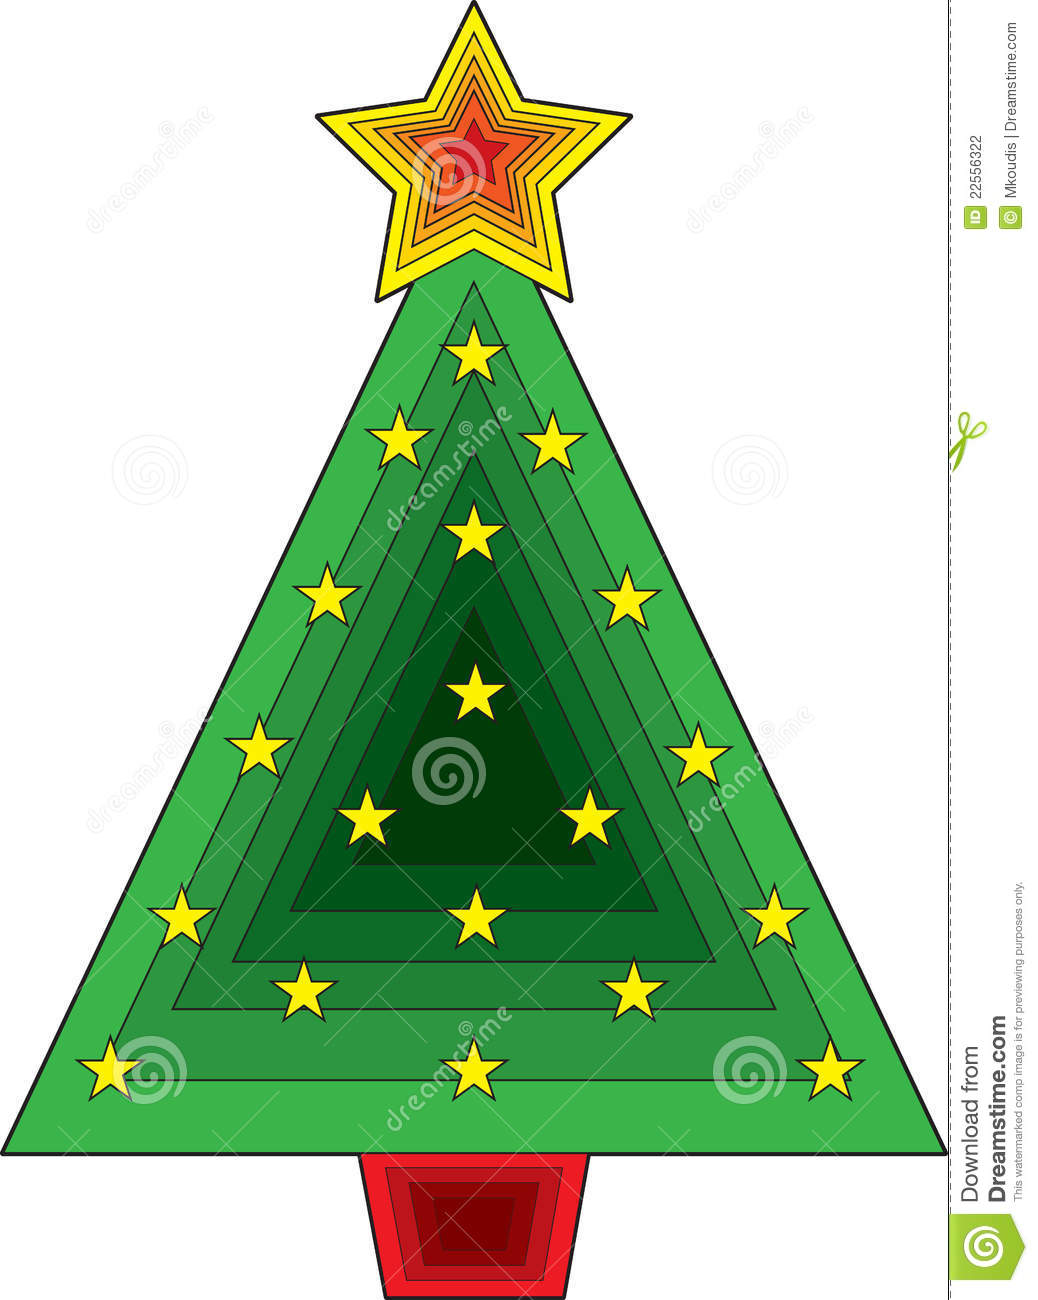 Triangle Christmas Tree Stock Photography - Image: 22556322